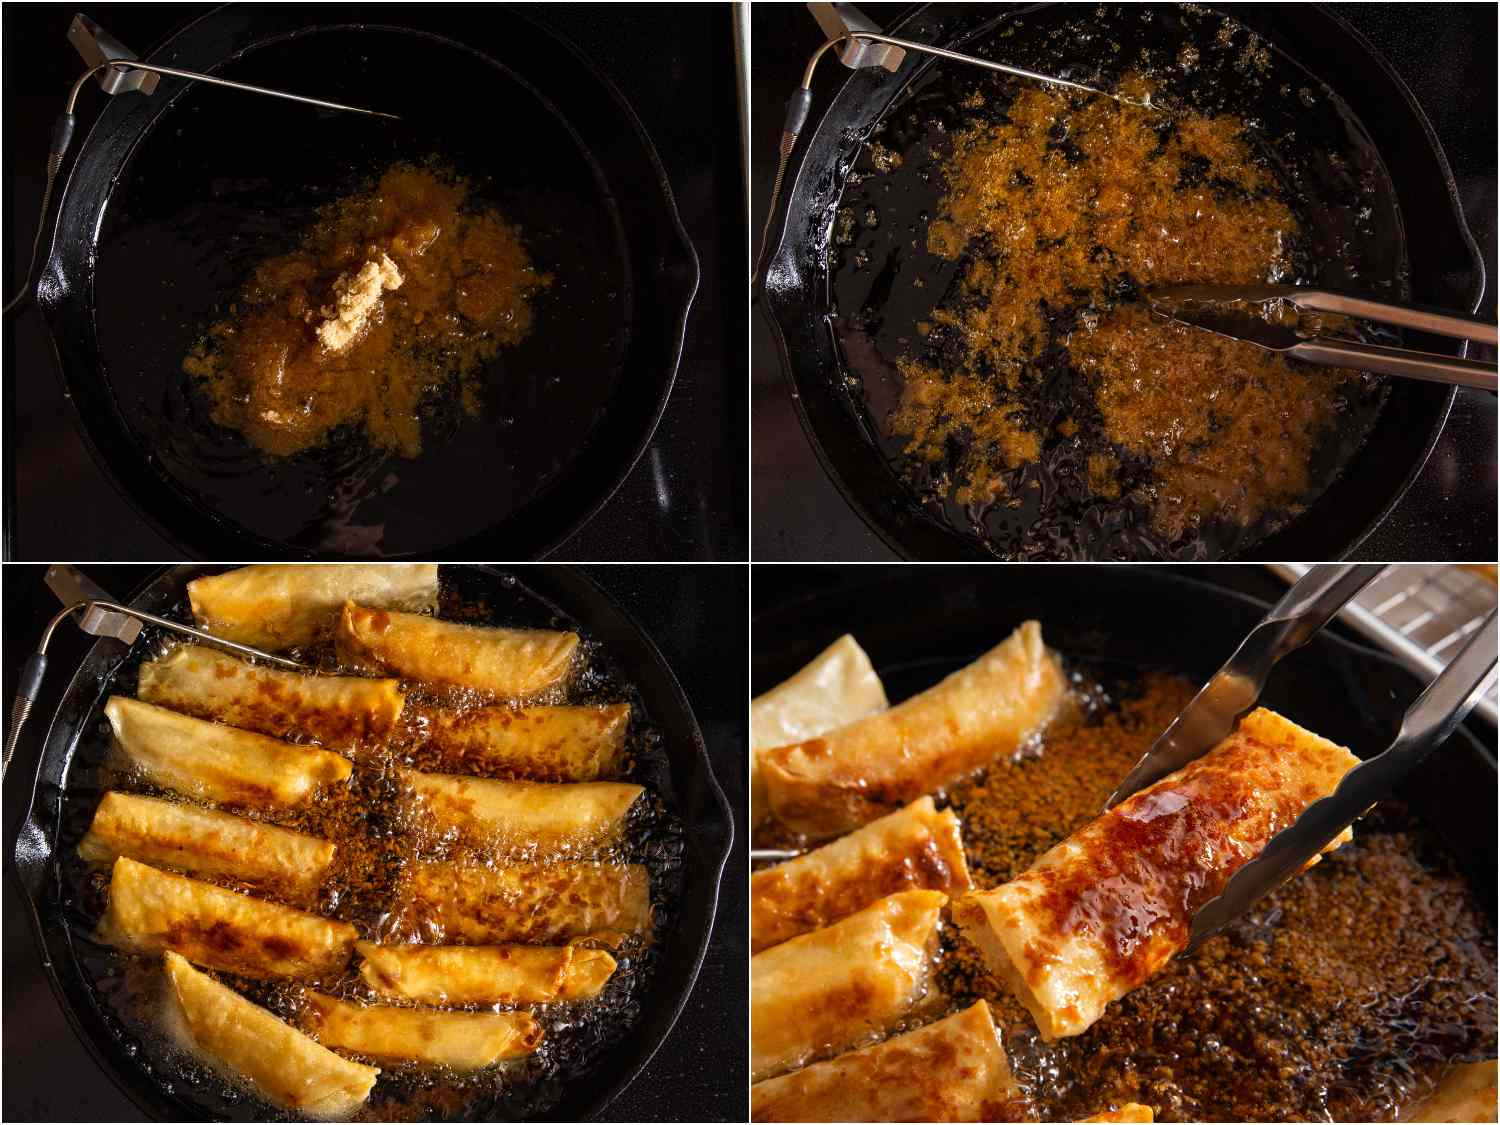 adding brown sugar to oil; sugar beginning to brown and melt; turon added back into pan, sugar beginning to stick to turon; tongs lifting a glazed turon out of the oil